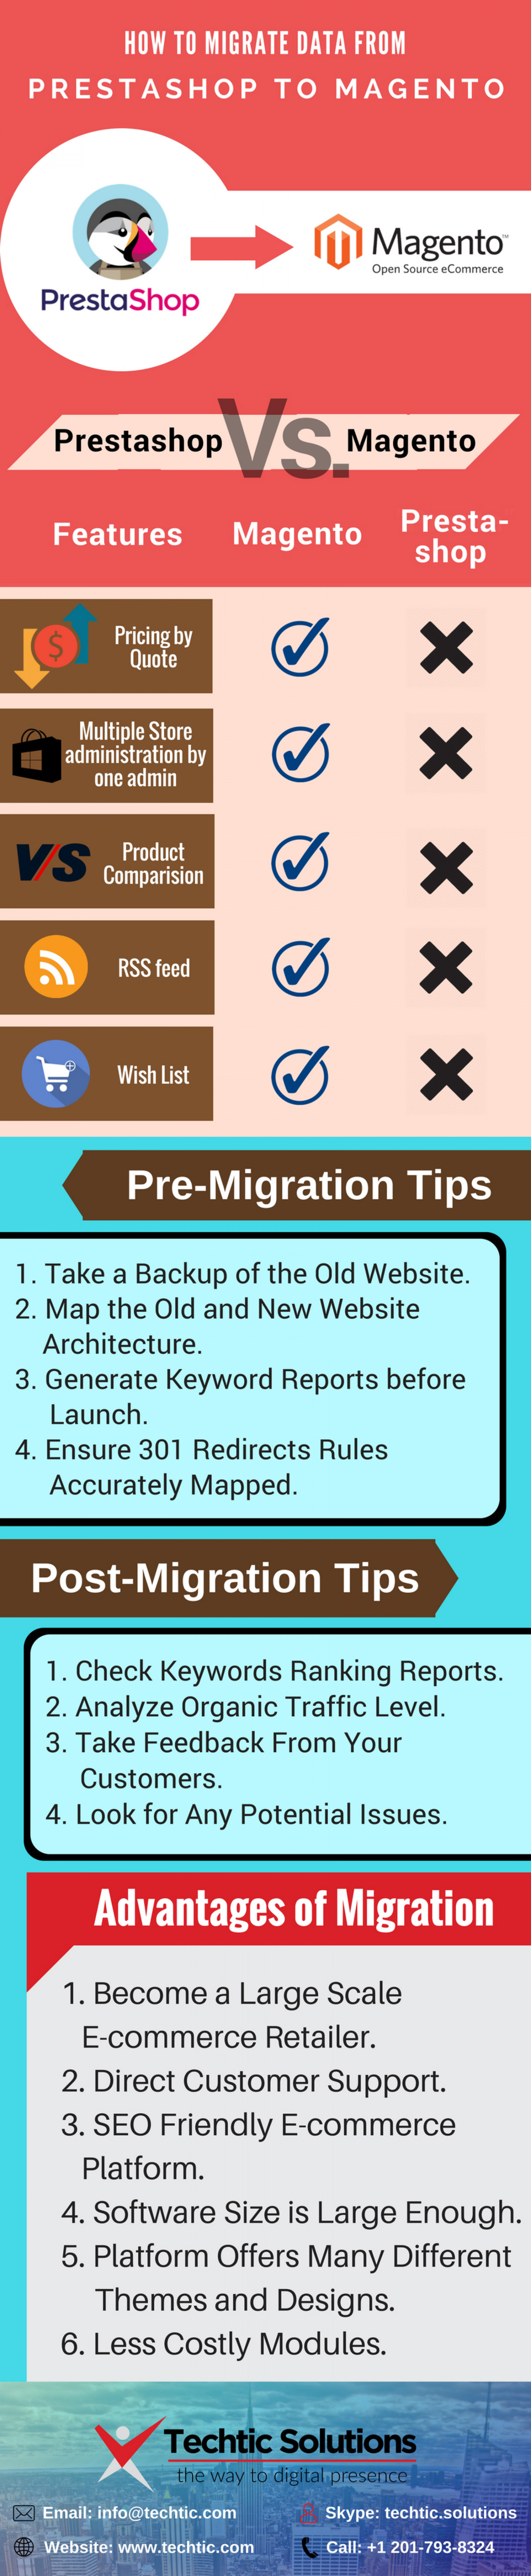 How to Migrate Data from Prestashop to Magento eCommerce Store Infographic